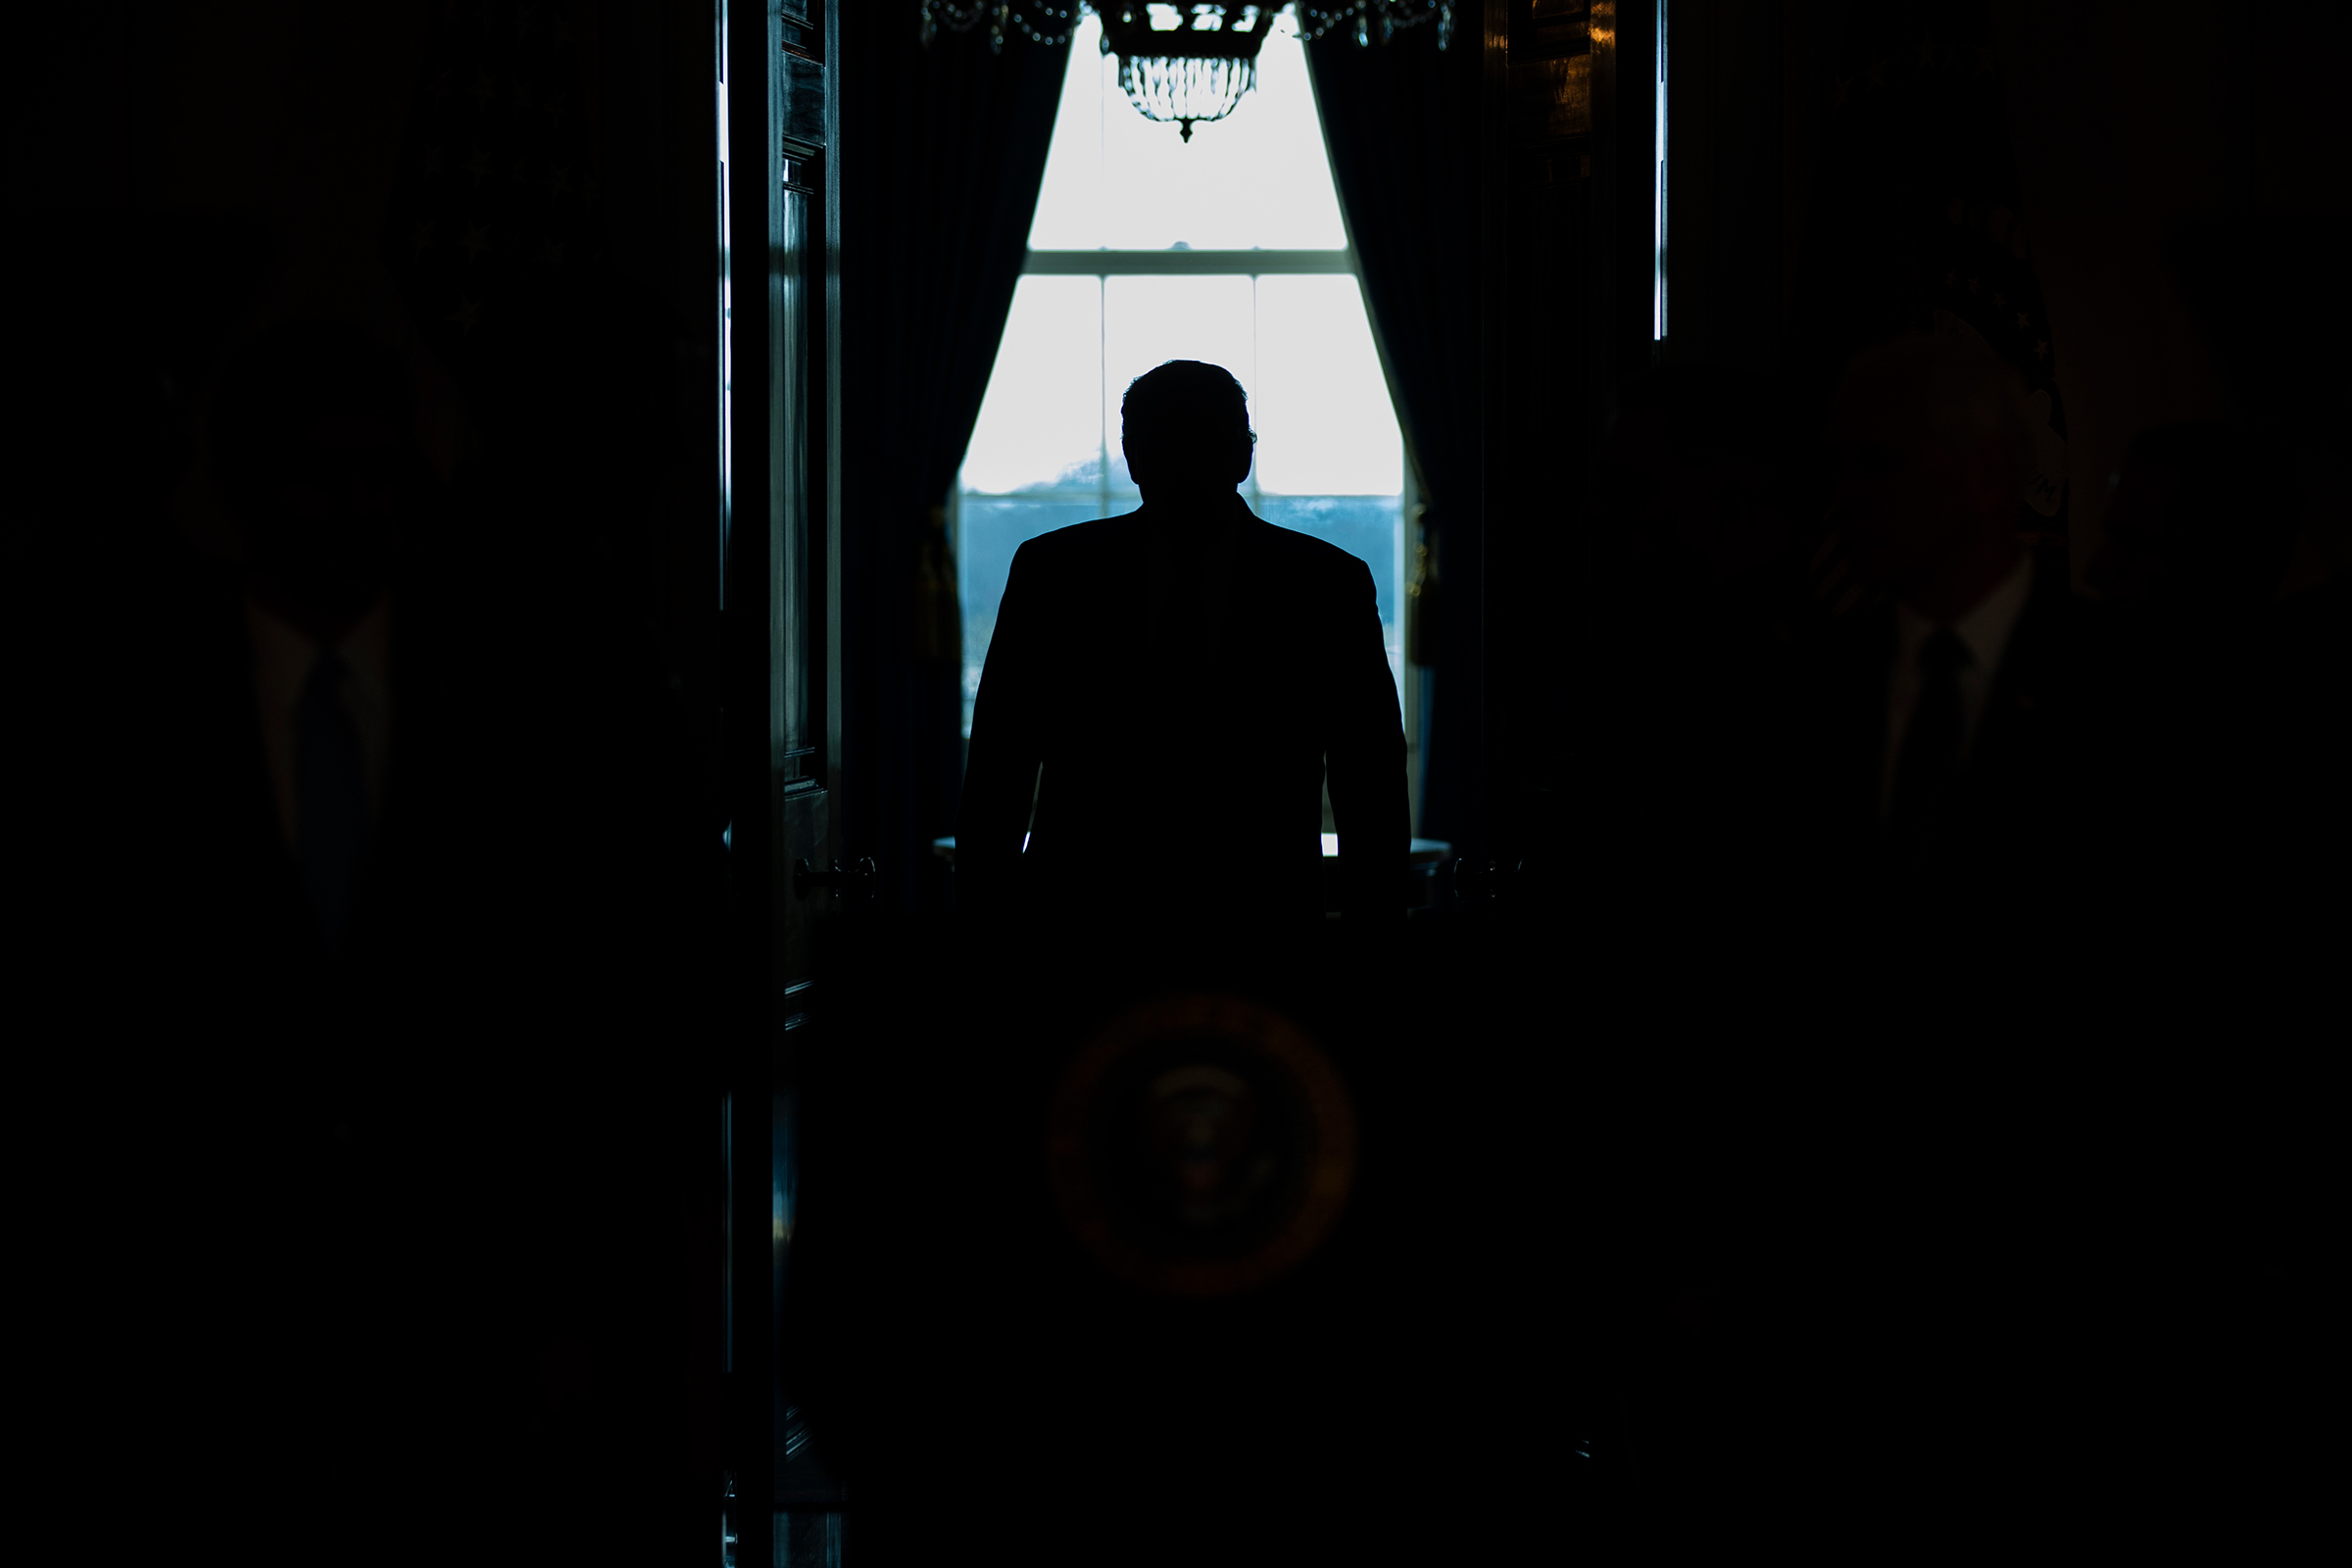 President Trump arrives to address the nation from the White House about Iran on Jan. 8, 2020.